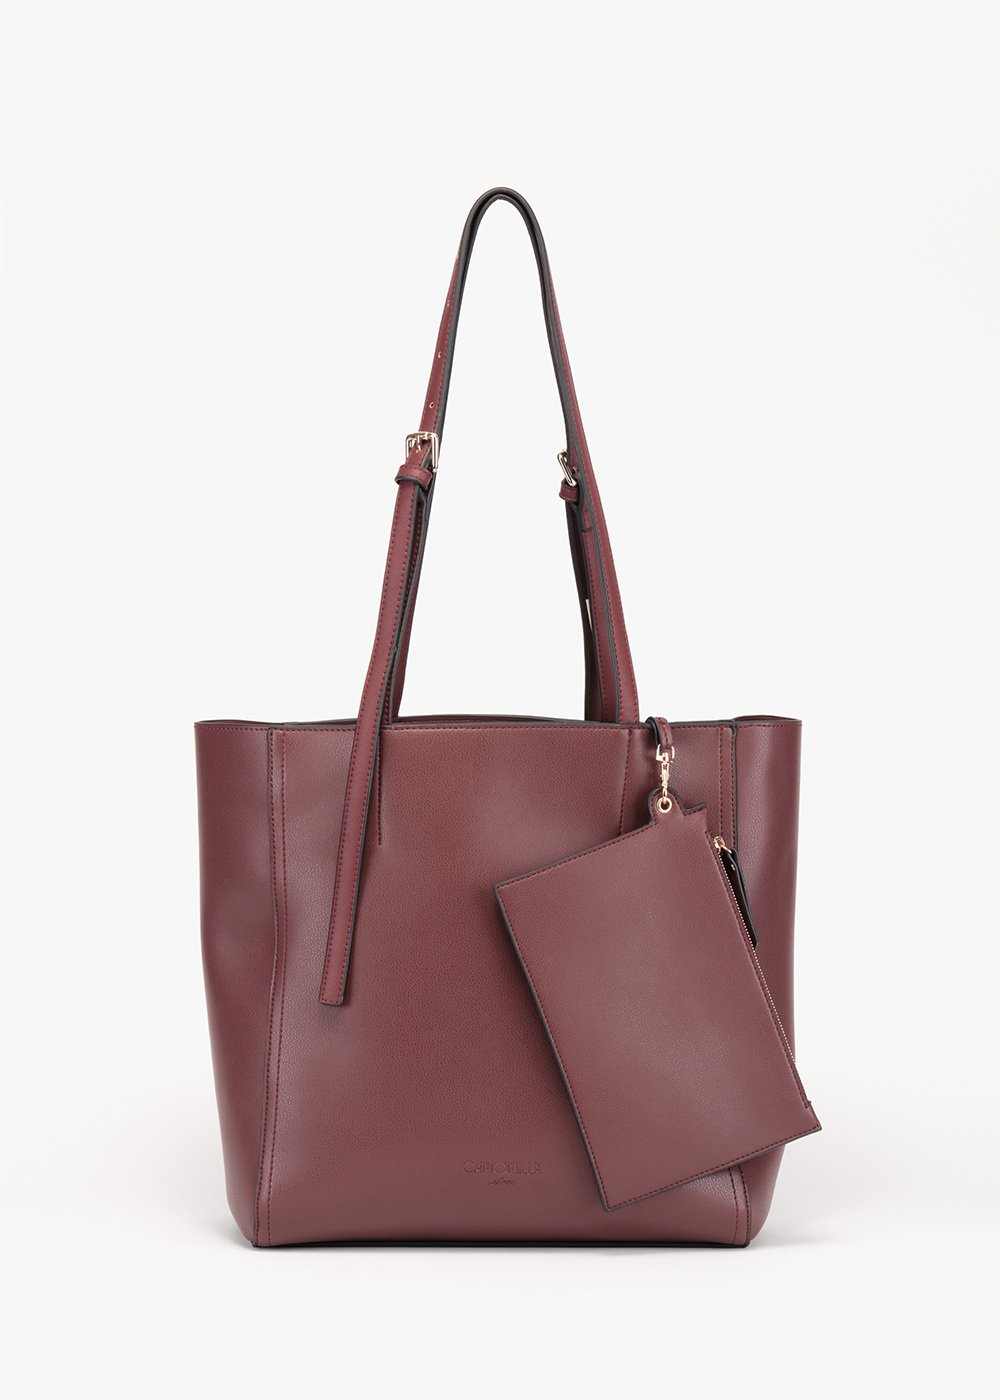 Shopping bag Belia in eco pelle sfoderata - Amarena - Donna